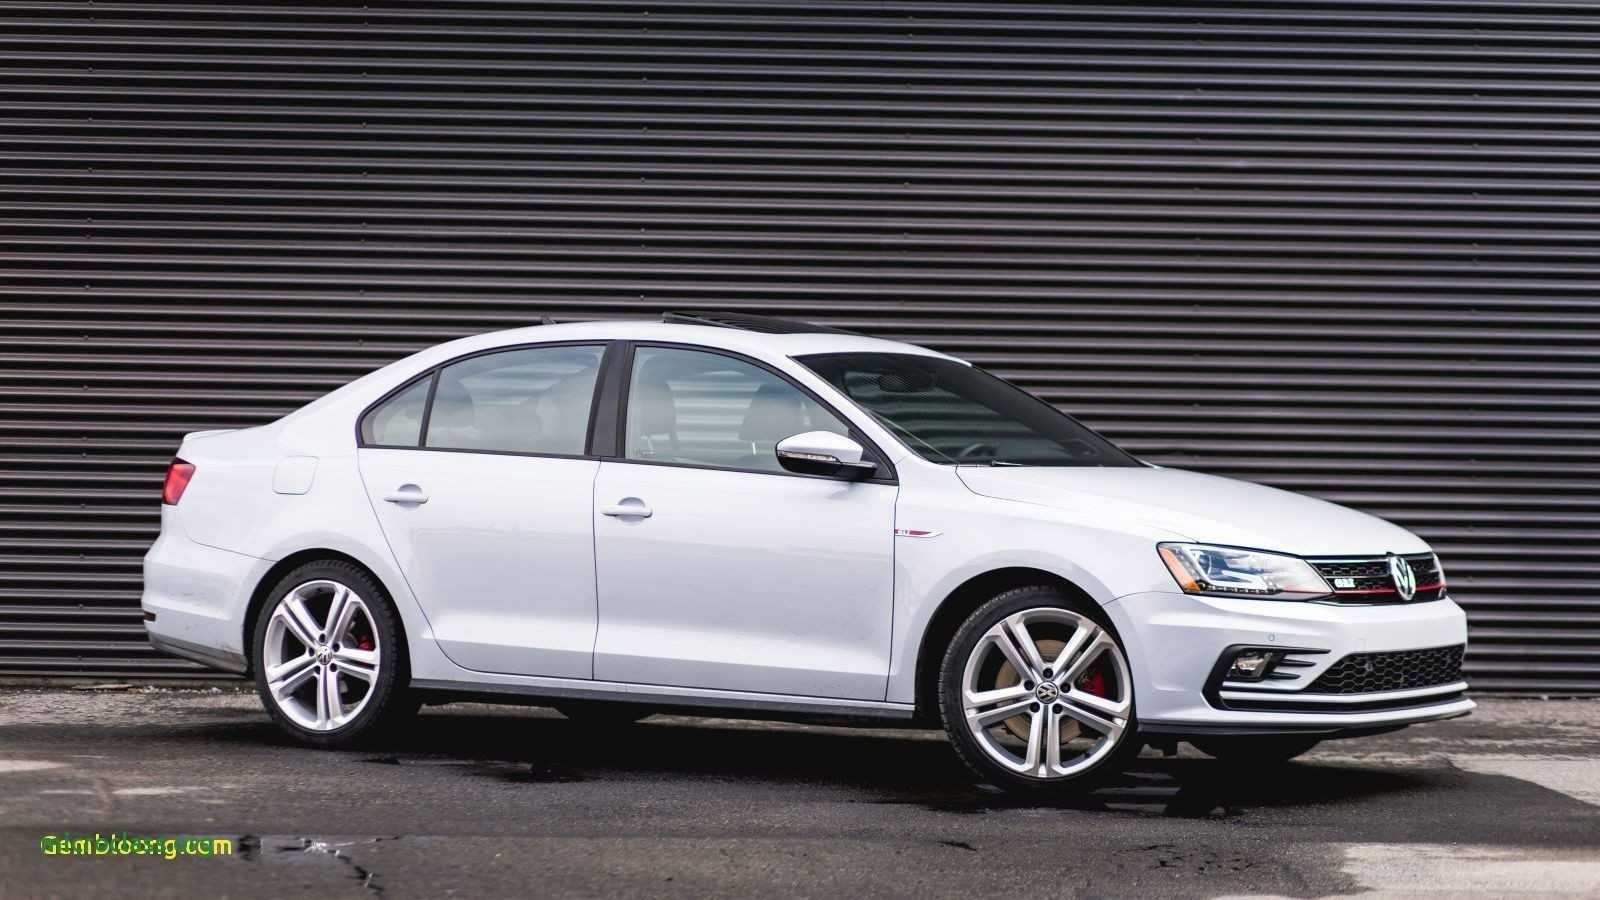 14 Concept of 2019 Vw Jetta Tdi Gli Performance and New Engine for 2019 Vw Jetta Tdi Gli